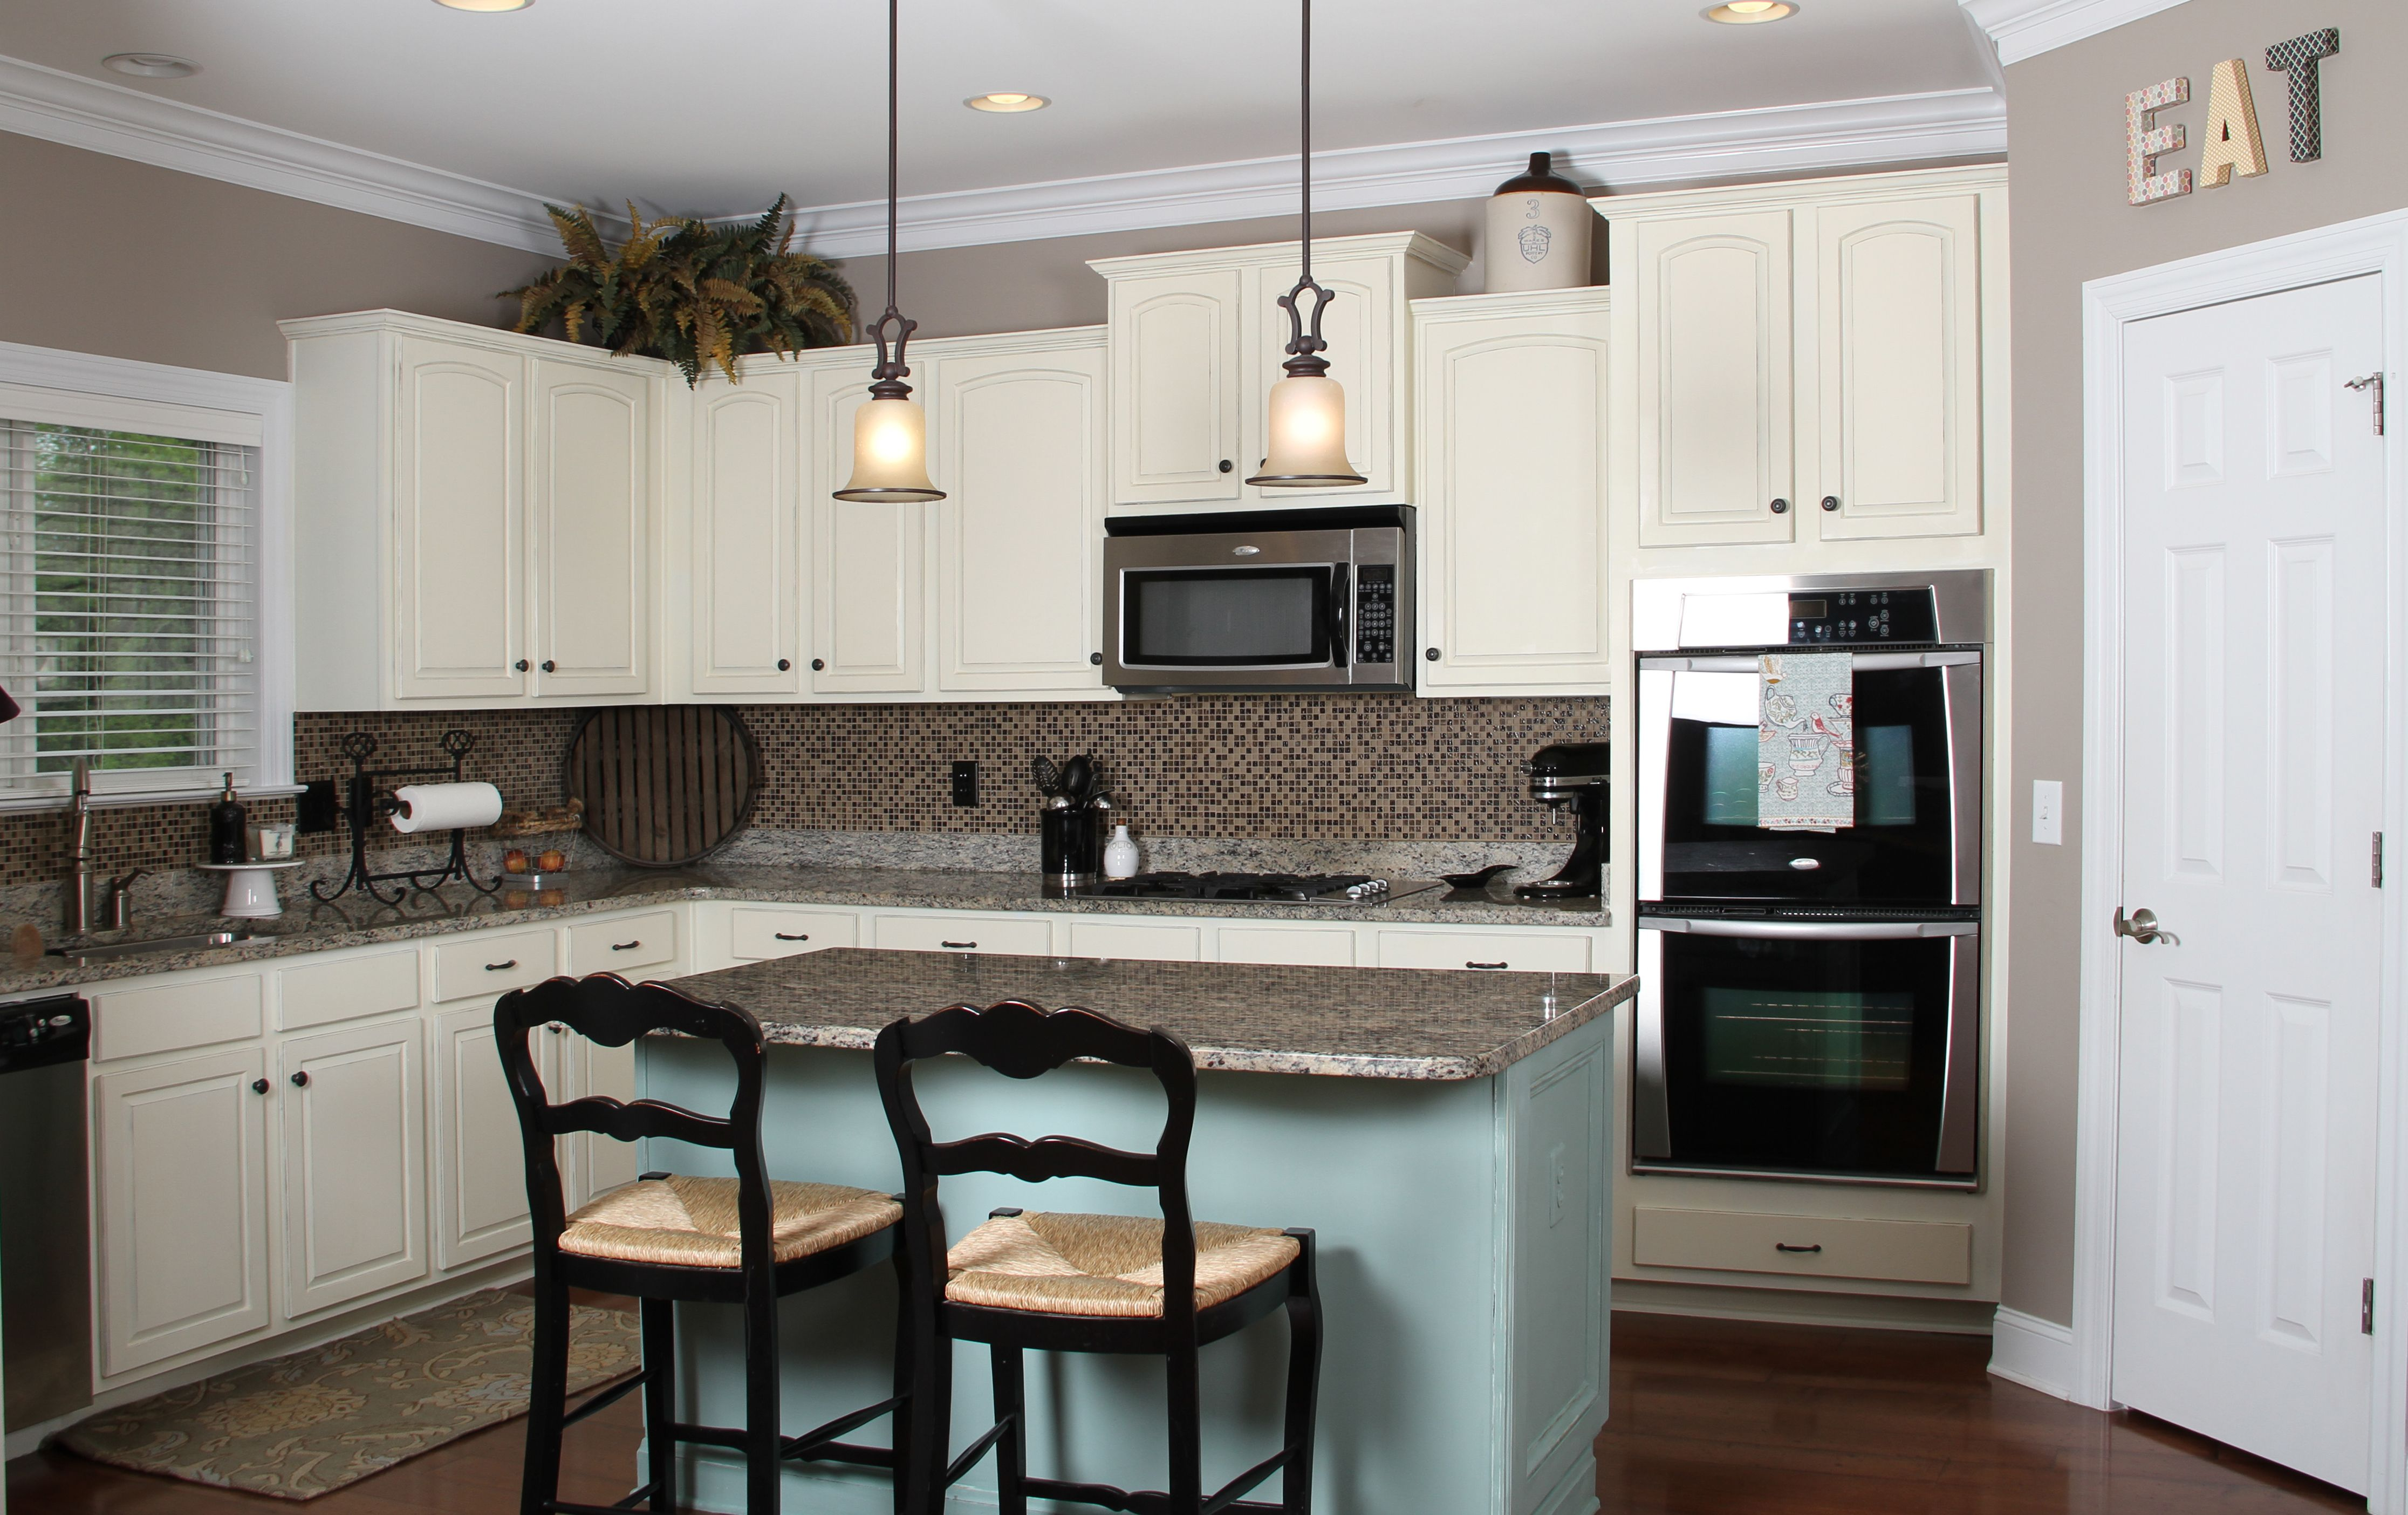 white kitchen cabinets kitchen island with black chairs l shape ...